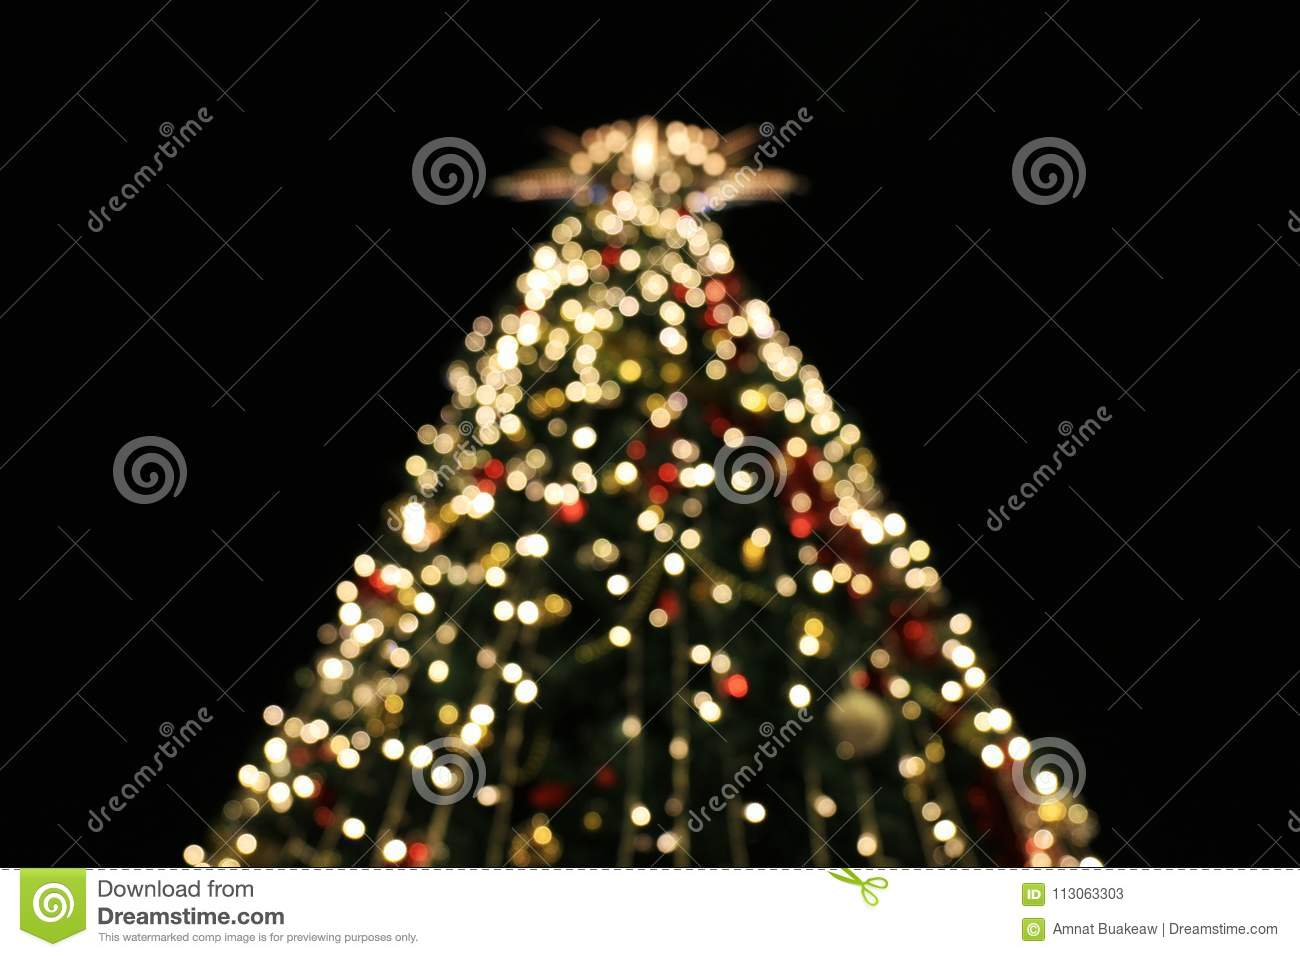 blurred christmas tree decoration background with night lights christmas holiday celebration christmas trees